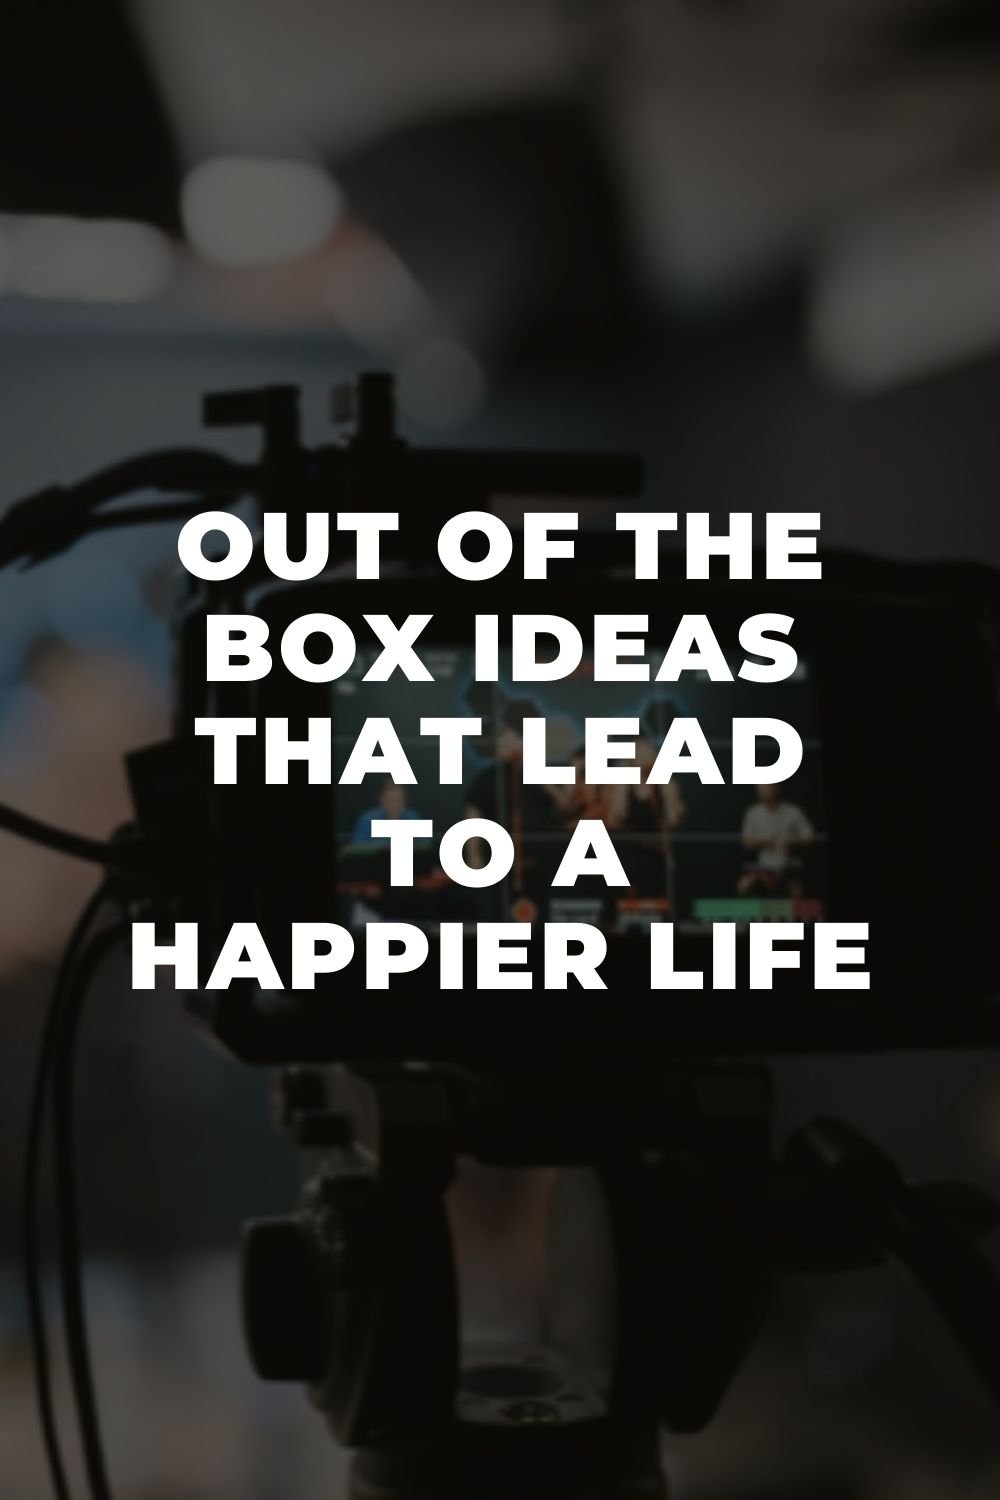 Out of the Box Ideas that Lead to a Happier Life